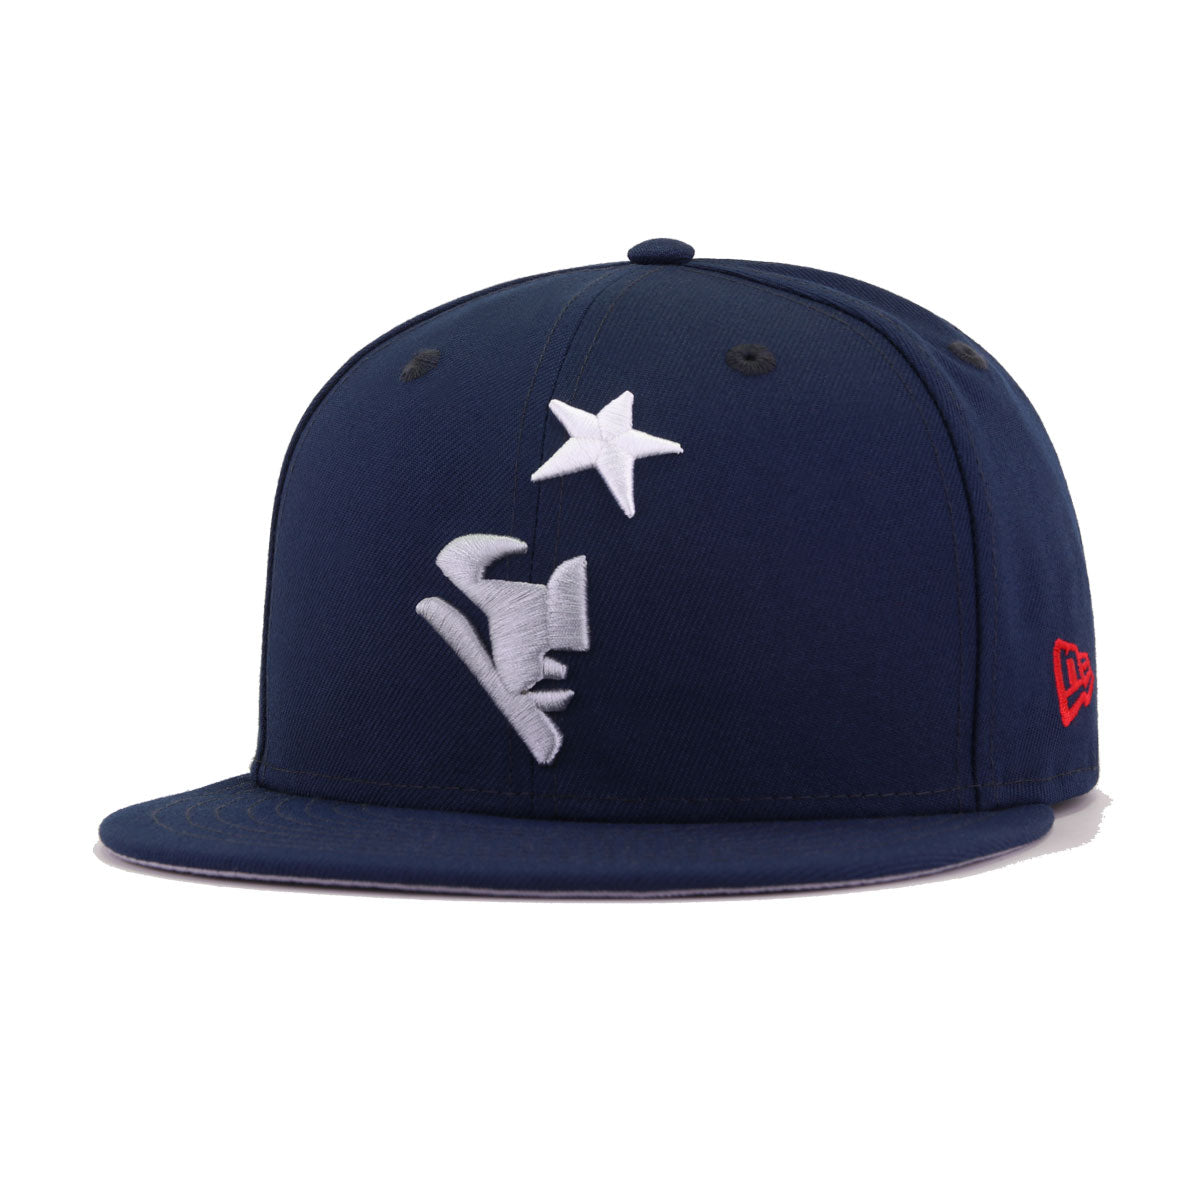 New England Patriots Oceanside Blue Elemental New Era 59Fifty Fitted